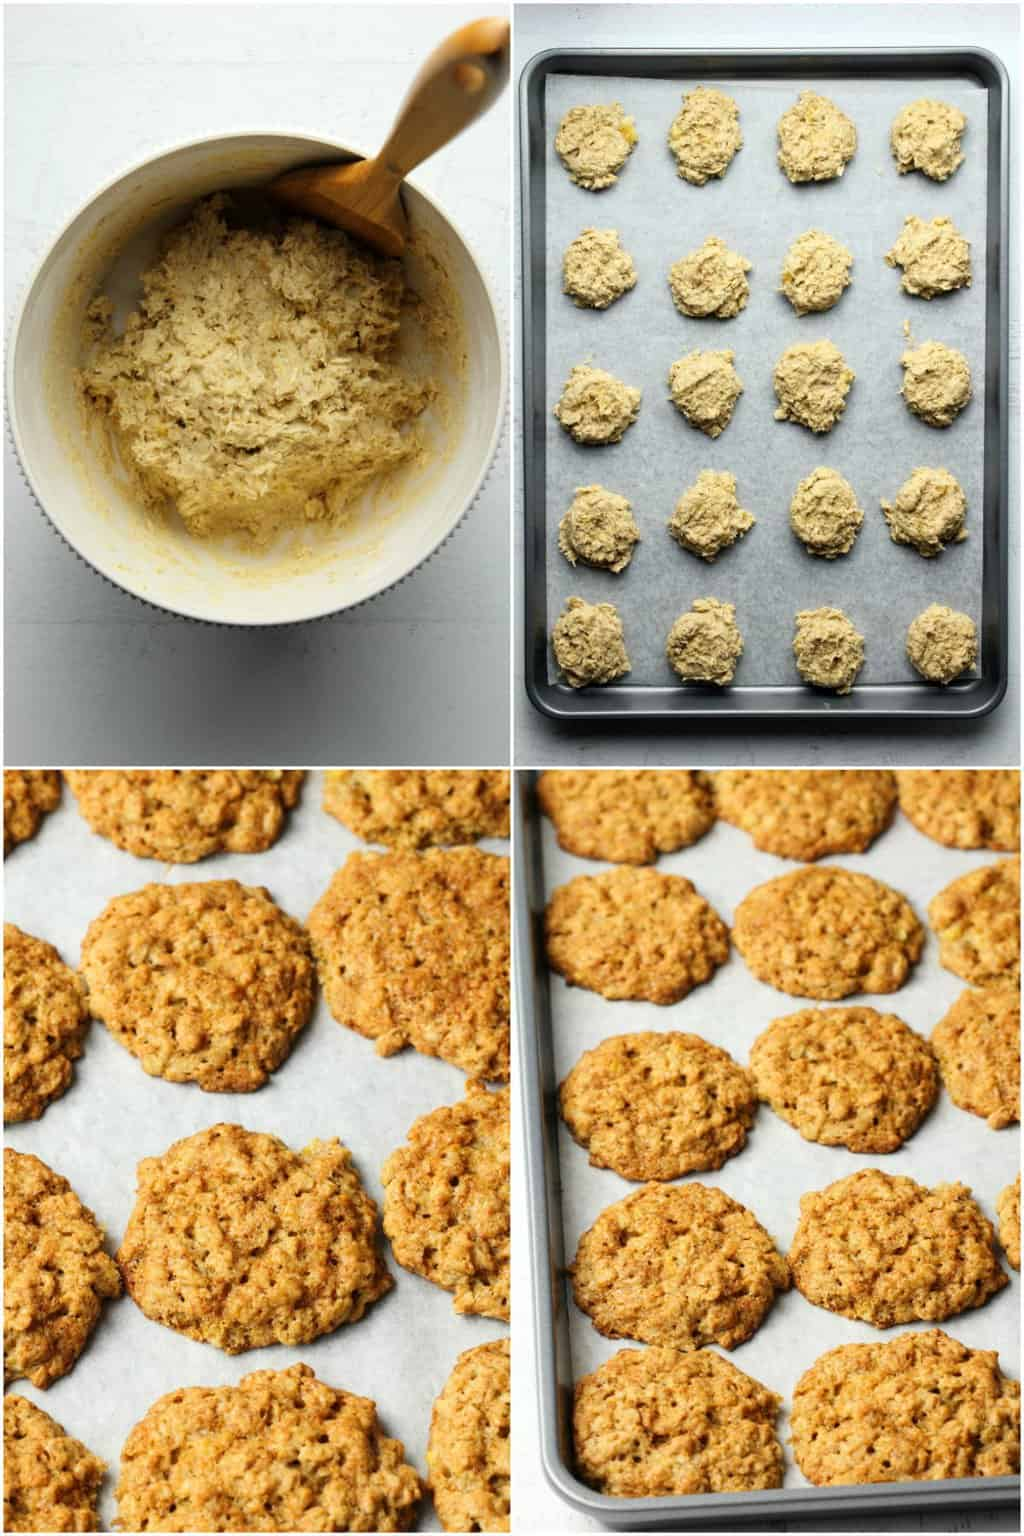 Step by step process photo collage of making vegan banana oatmeal cookies.